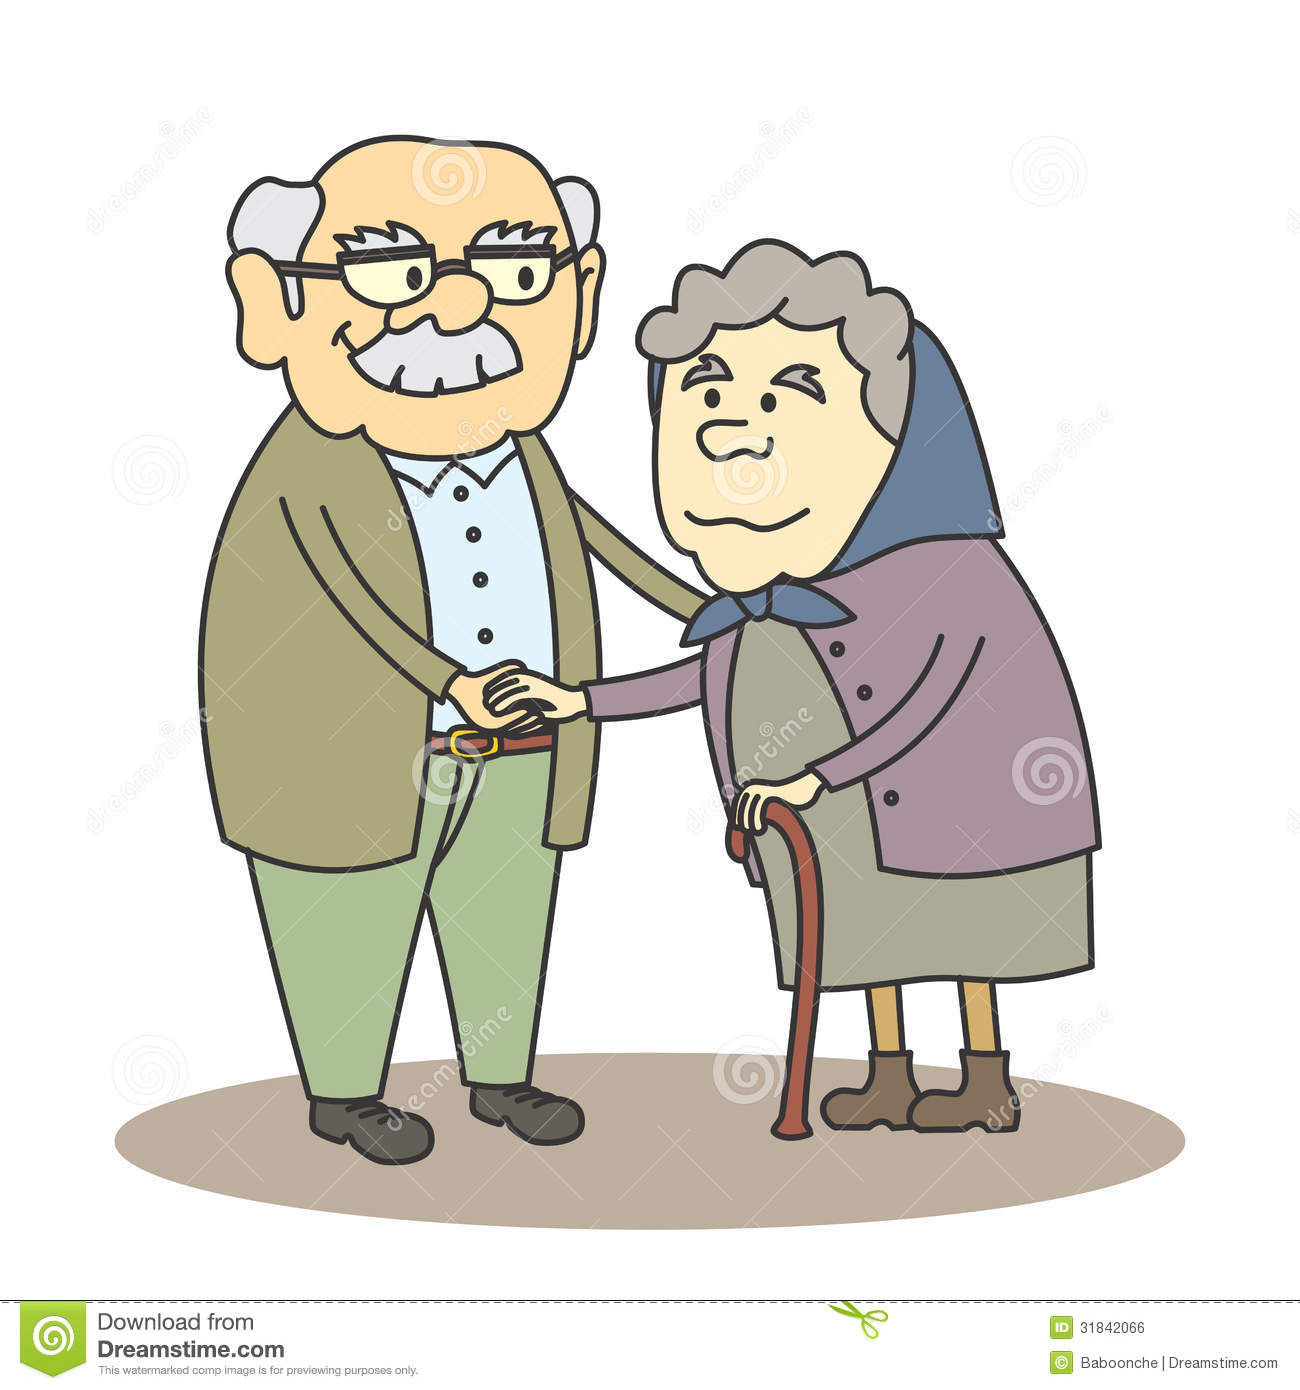 Grandpa And Grandma Royalty Free Stock Image - Image: 31842066